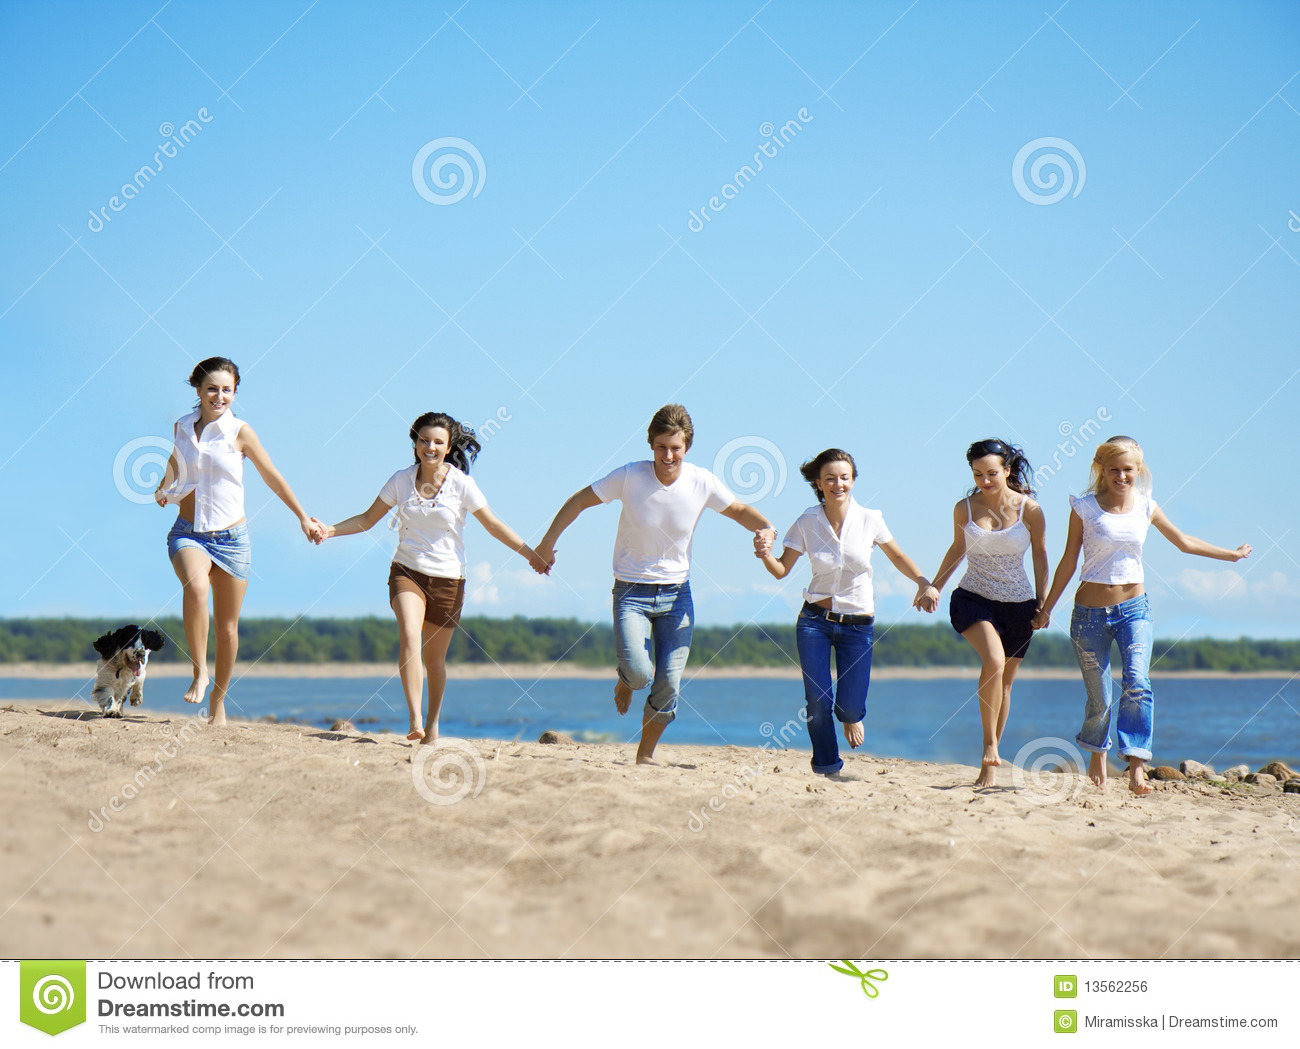 Group of people relaxing on the beach